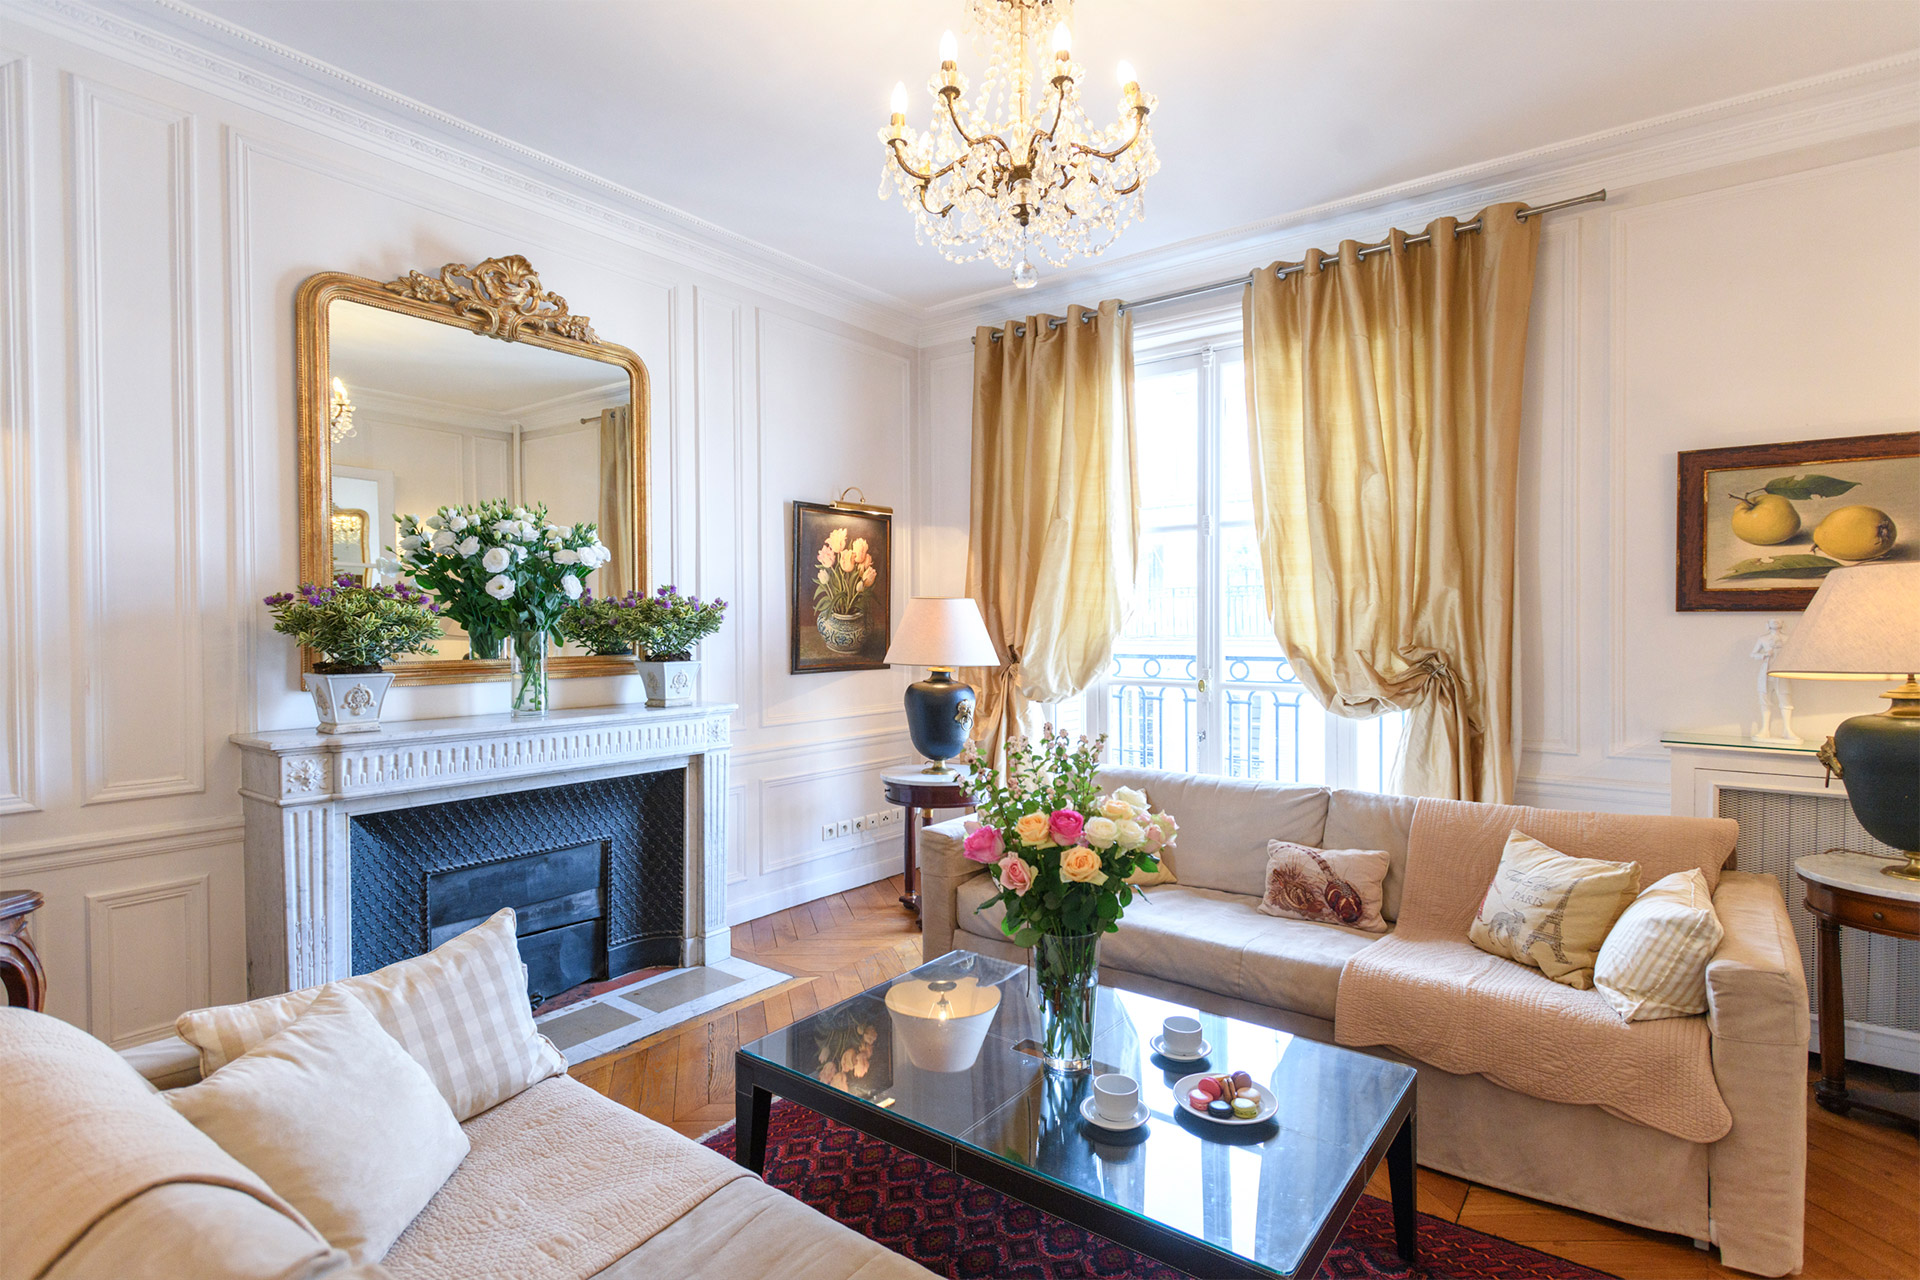 Living room French windows in the Chateauneuf vacation rental offered by Paris Perfect